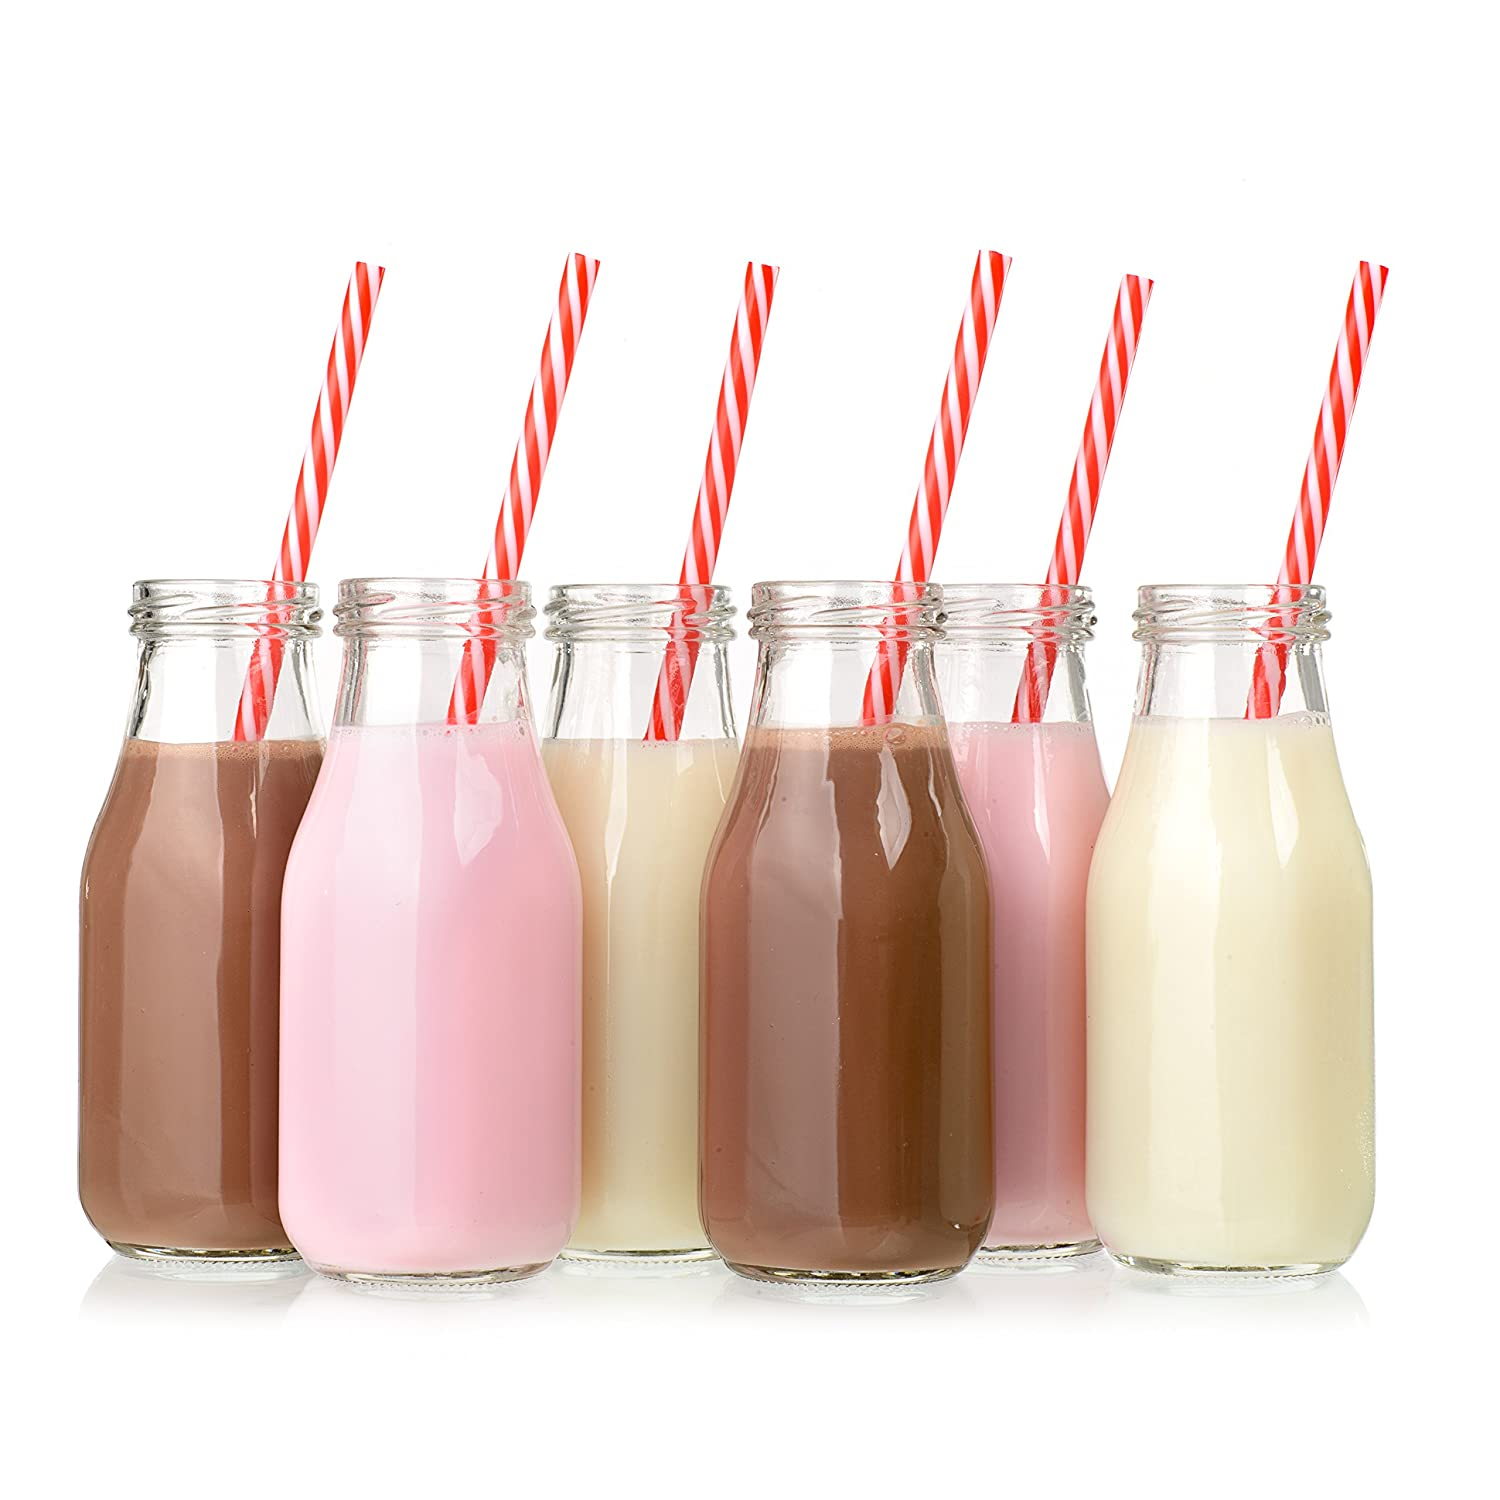 Glass Milk Bottles with Lids 11oz (12-Pack), Juice Bottles with Lids, Vintage Breakfast Shake Container, Vintage Drinking Bottles for Party, Glass Bottle with Straw and Lid for Kids, Milk Glass Set